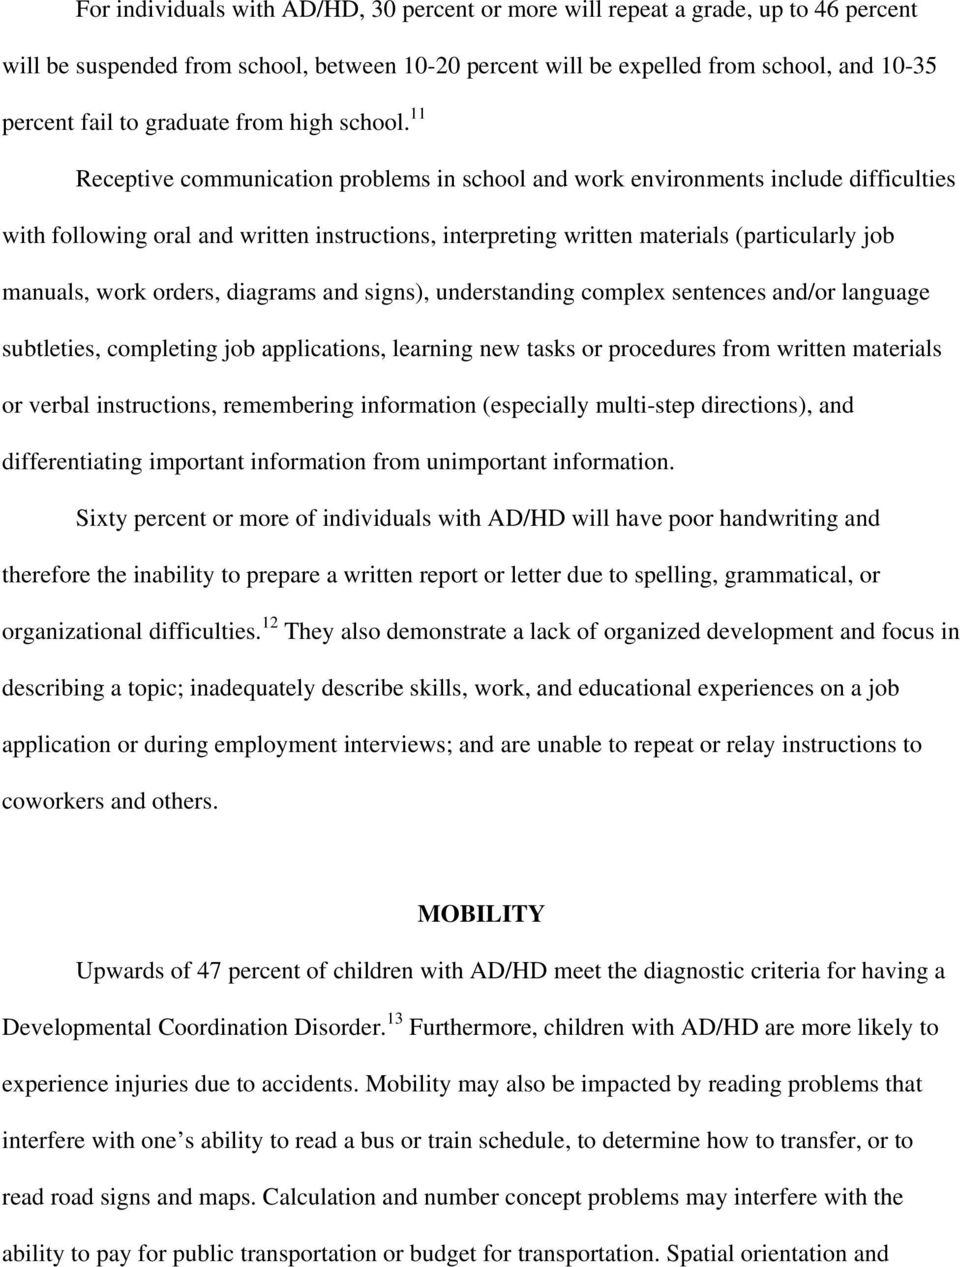 11 Receptive communication problems in school and work environments include difficulties with following oral and written instructions, interpreting written materials (particularly job manuals, work